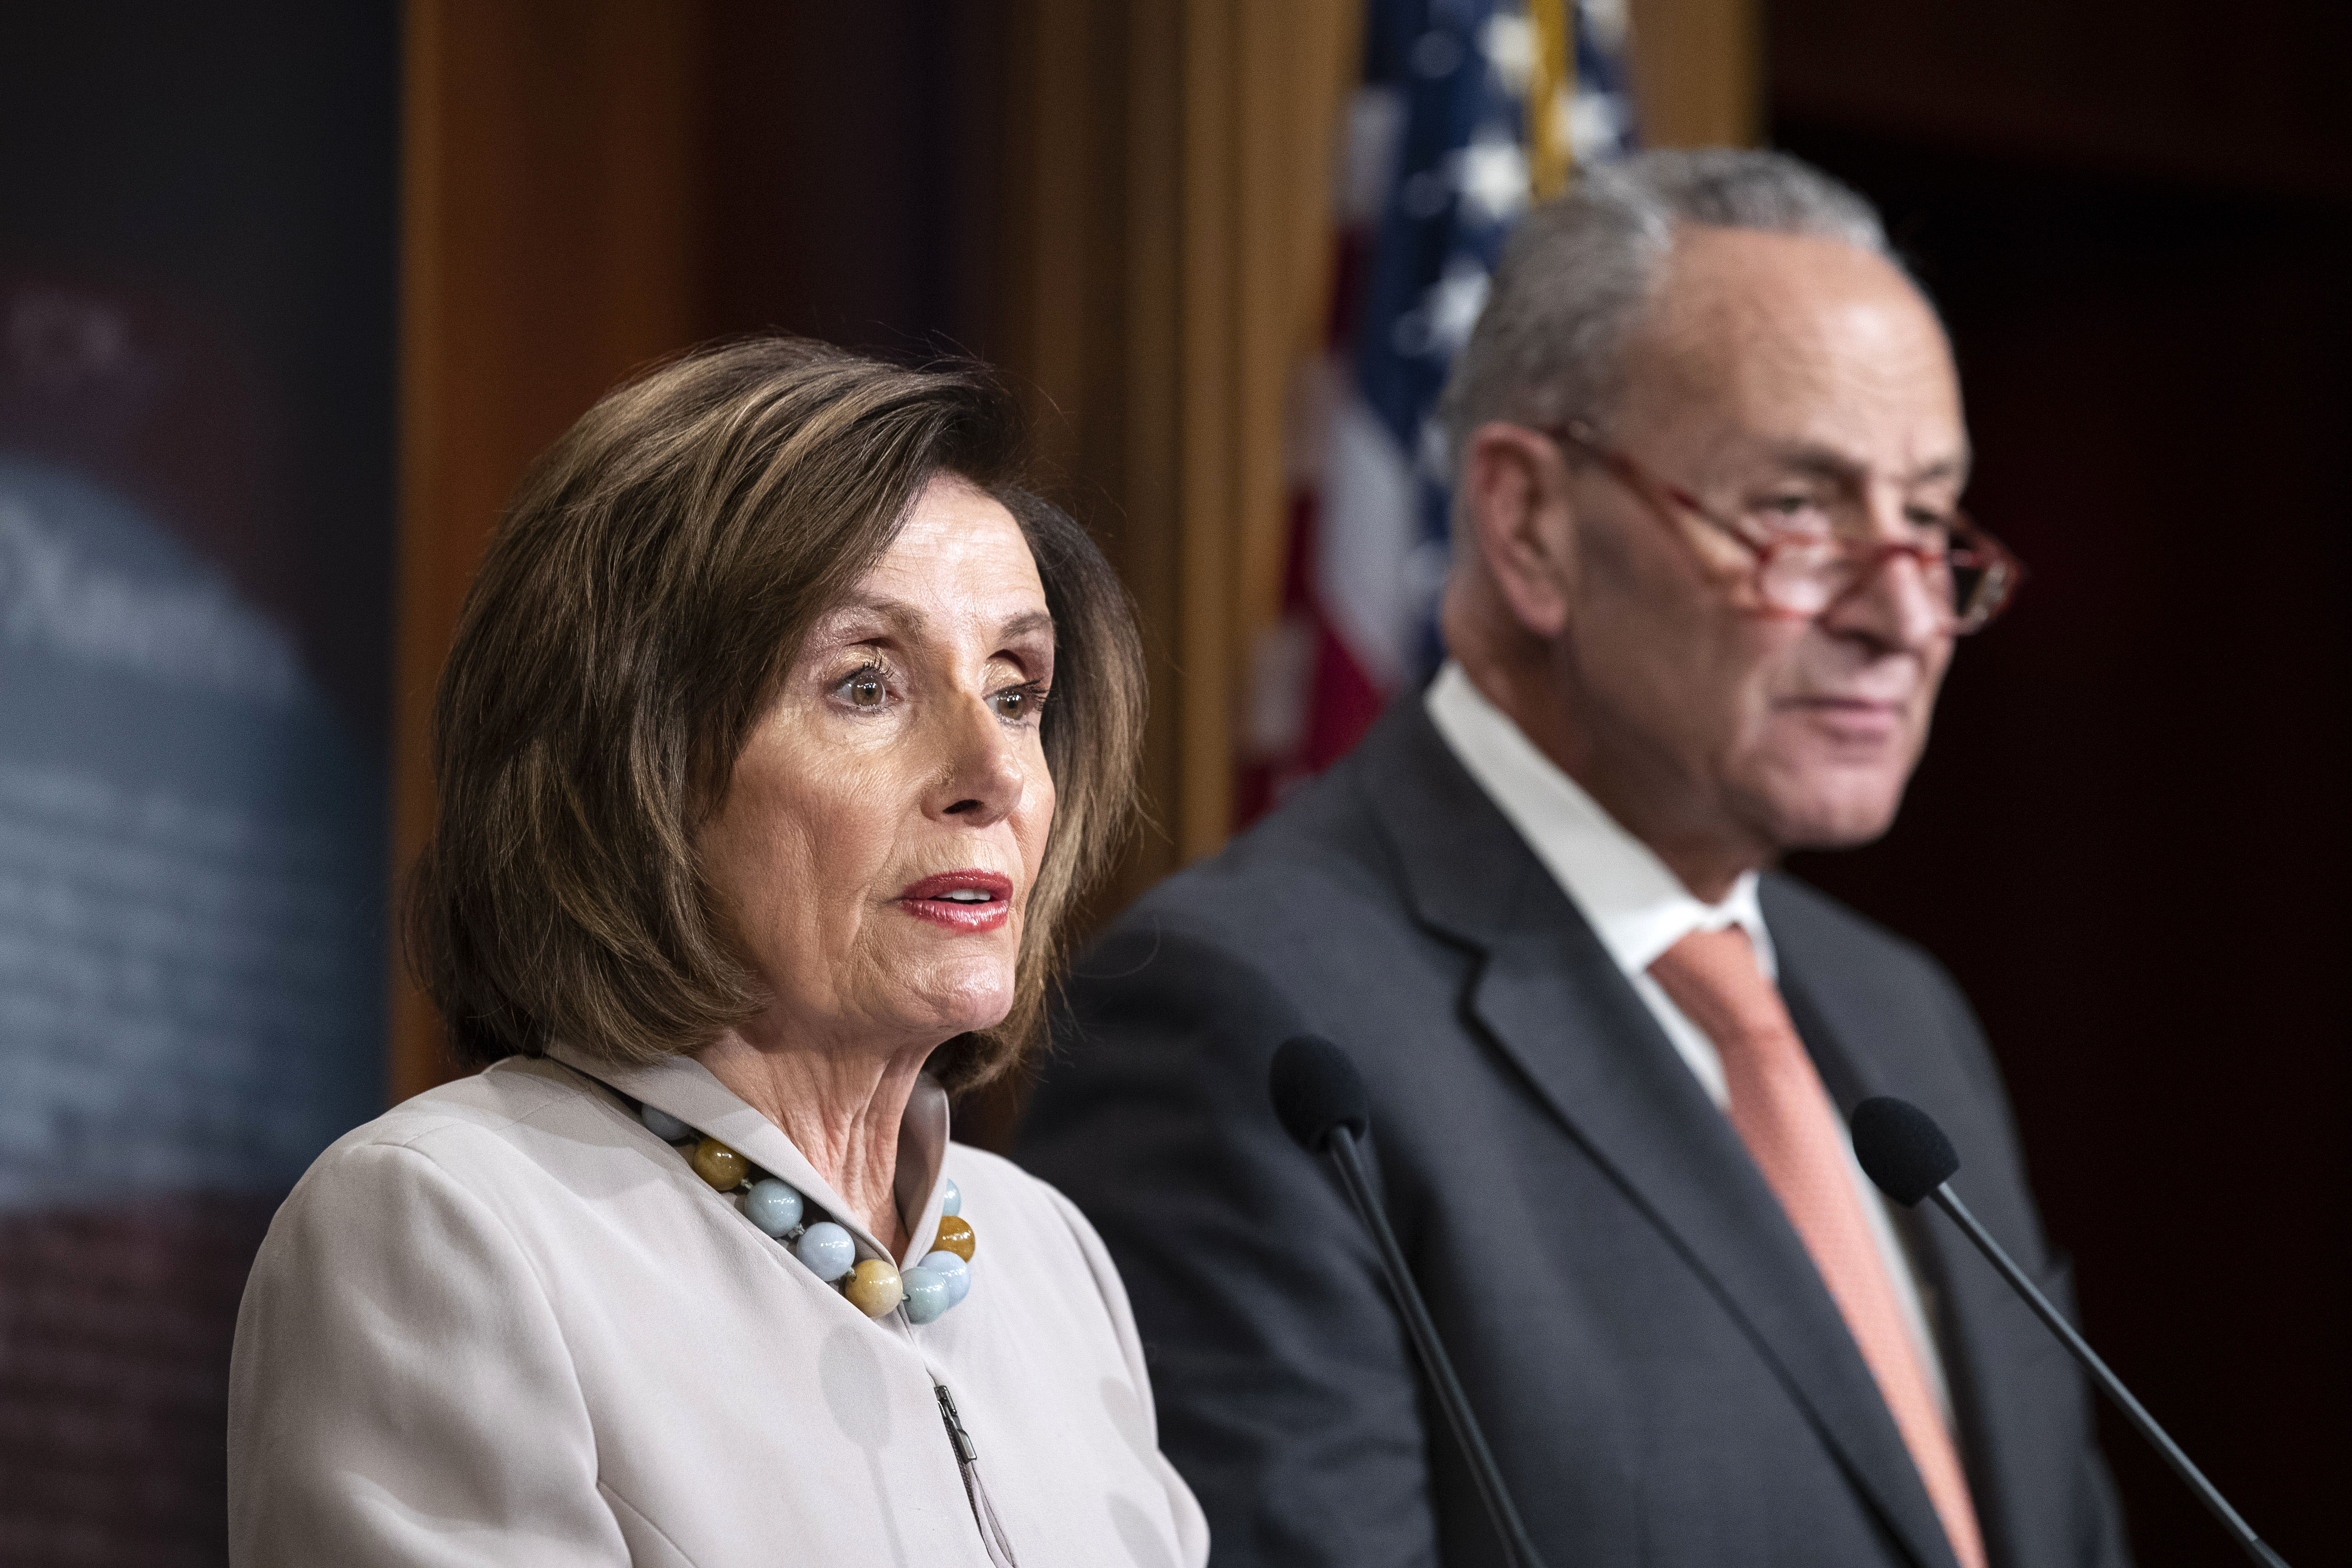 House Speaker Nancy Pelosi and Senate Minority Leader Chuck Schumer hold a news conference in Washington, DC, on February 11.